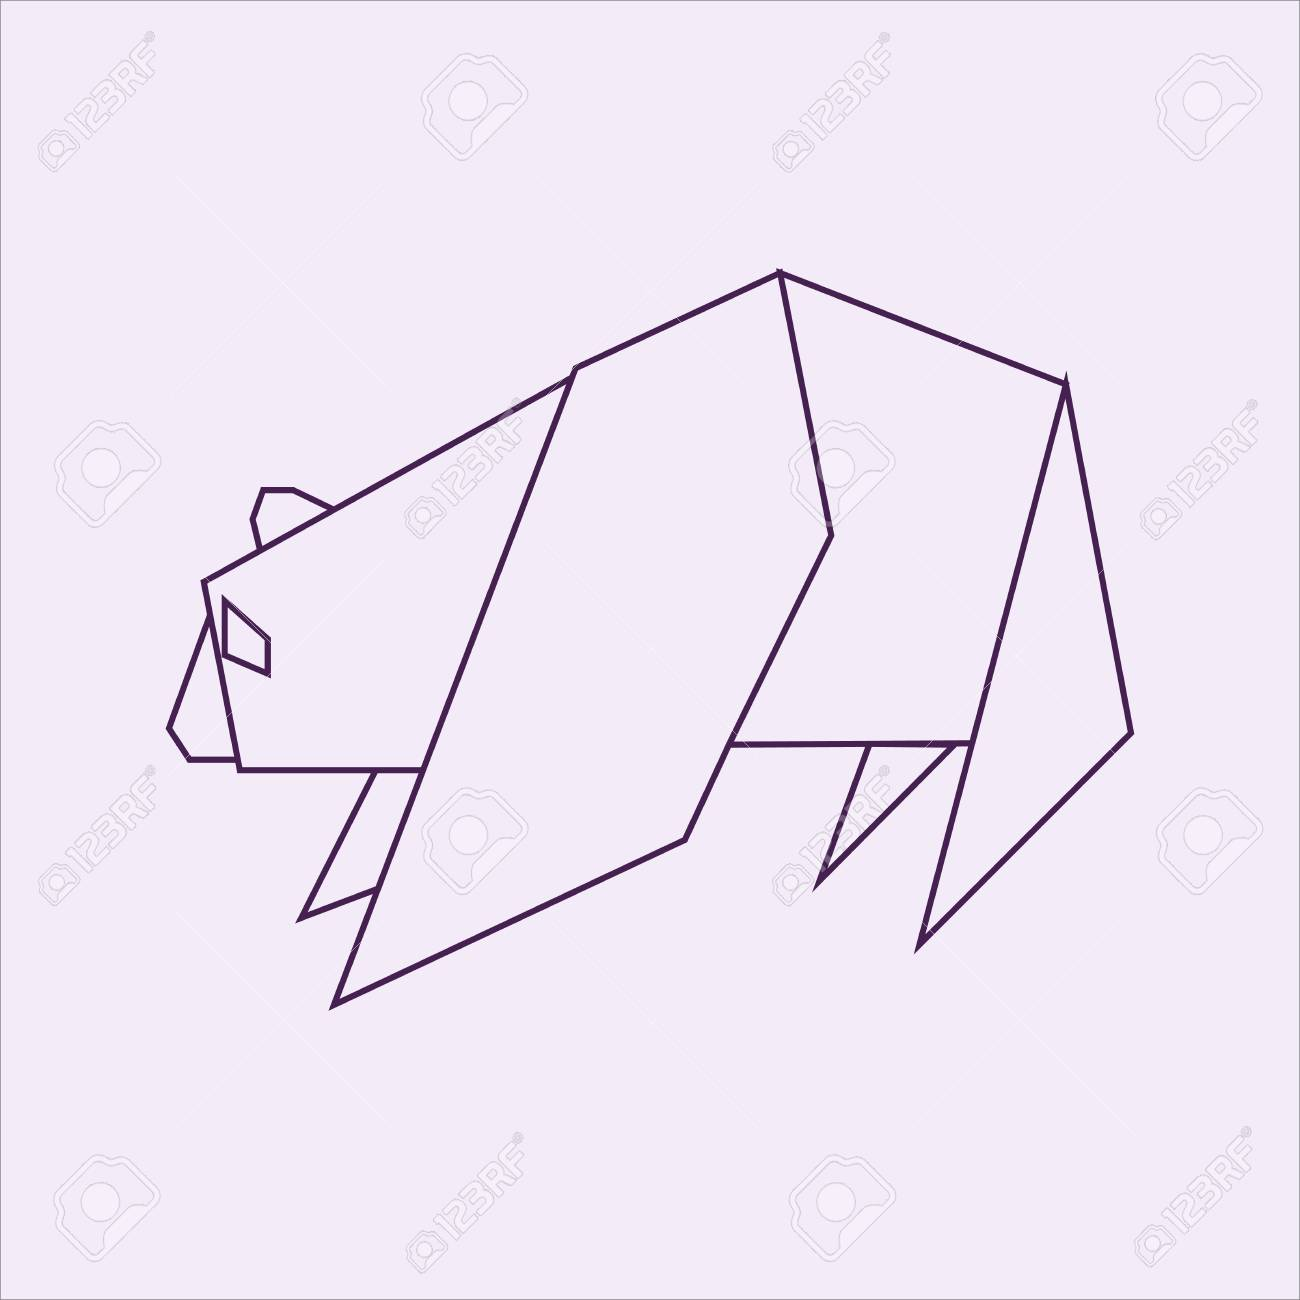 Tremendous Bear Origami Stock Photo Picture And Royalty Free Image Image Wiring 101 Olytiaxxcnl